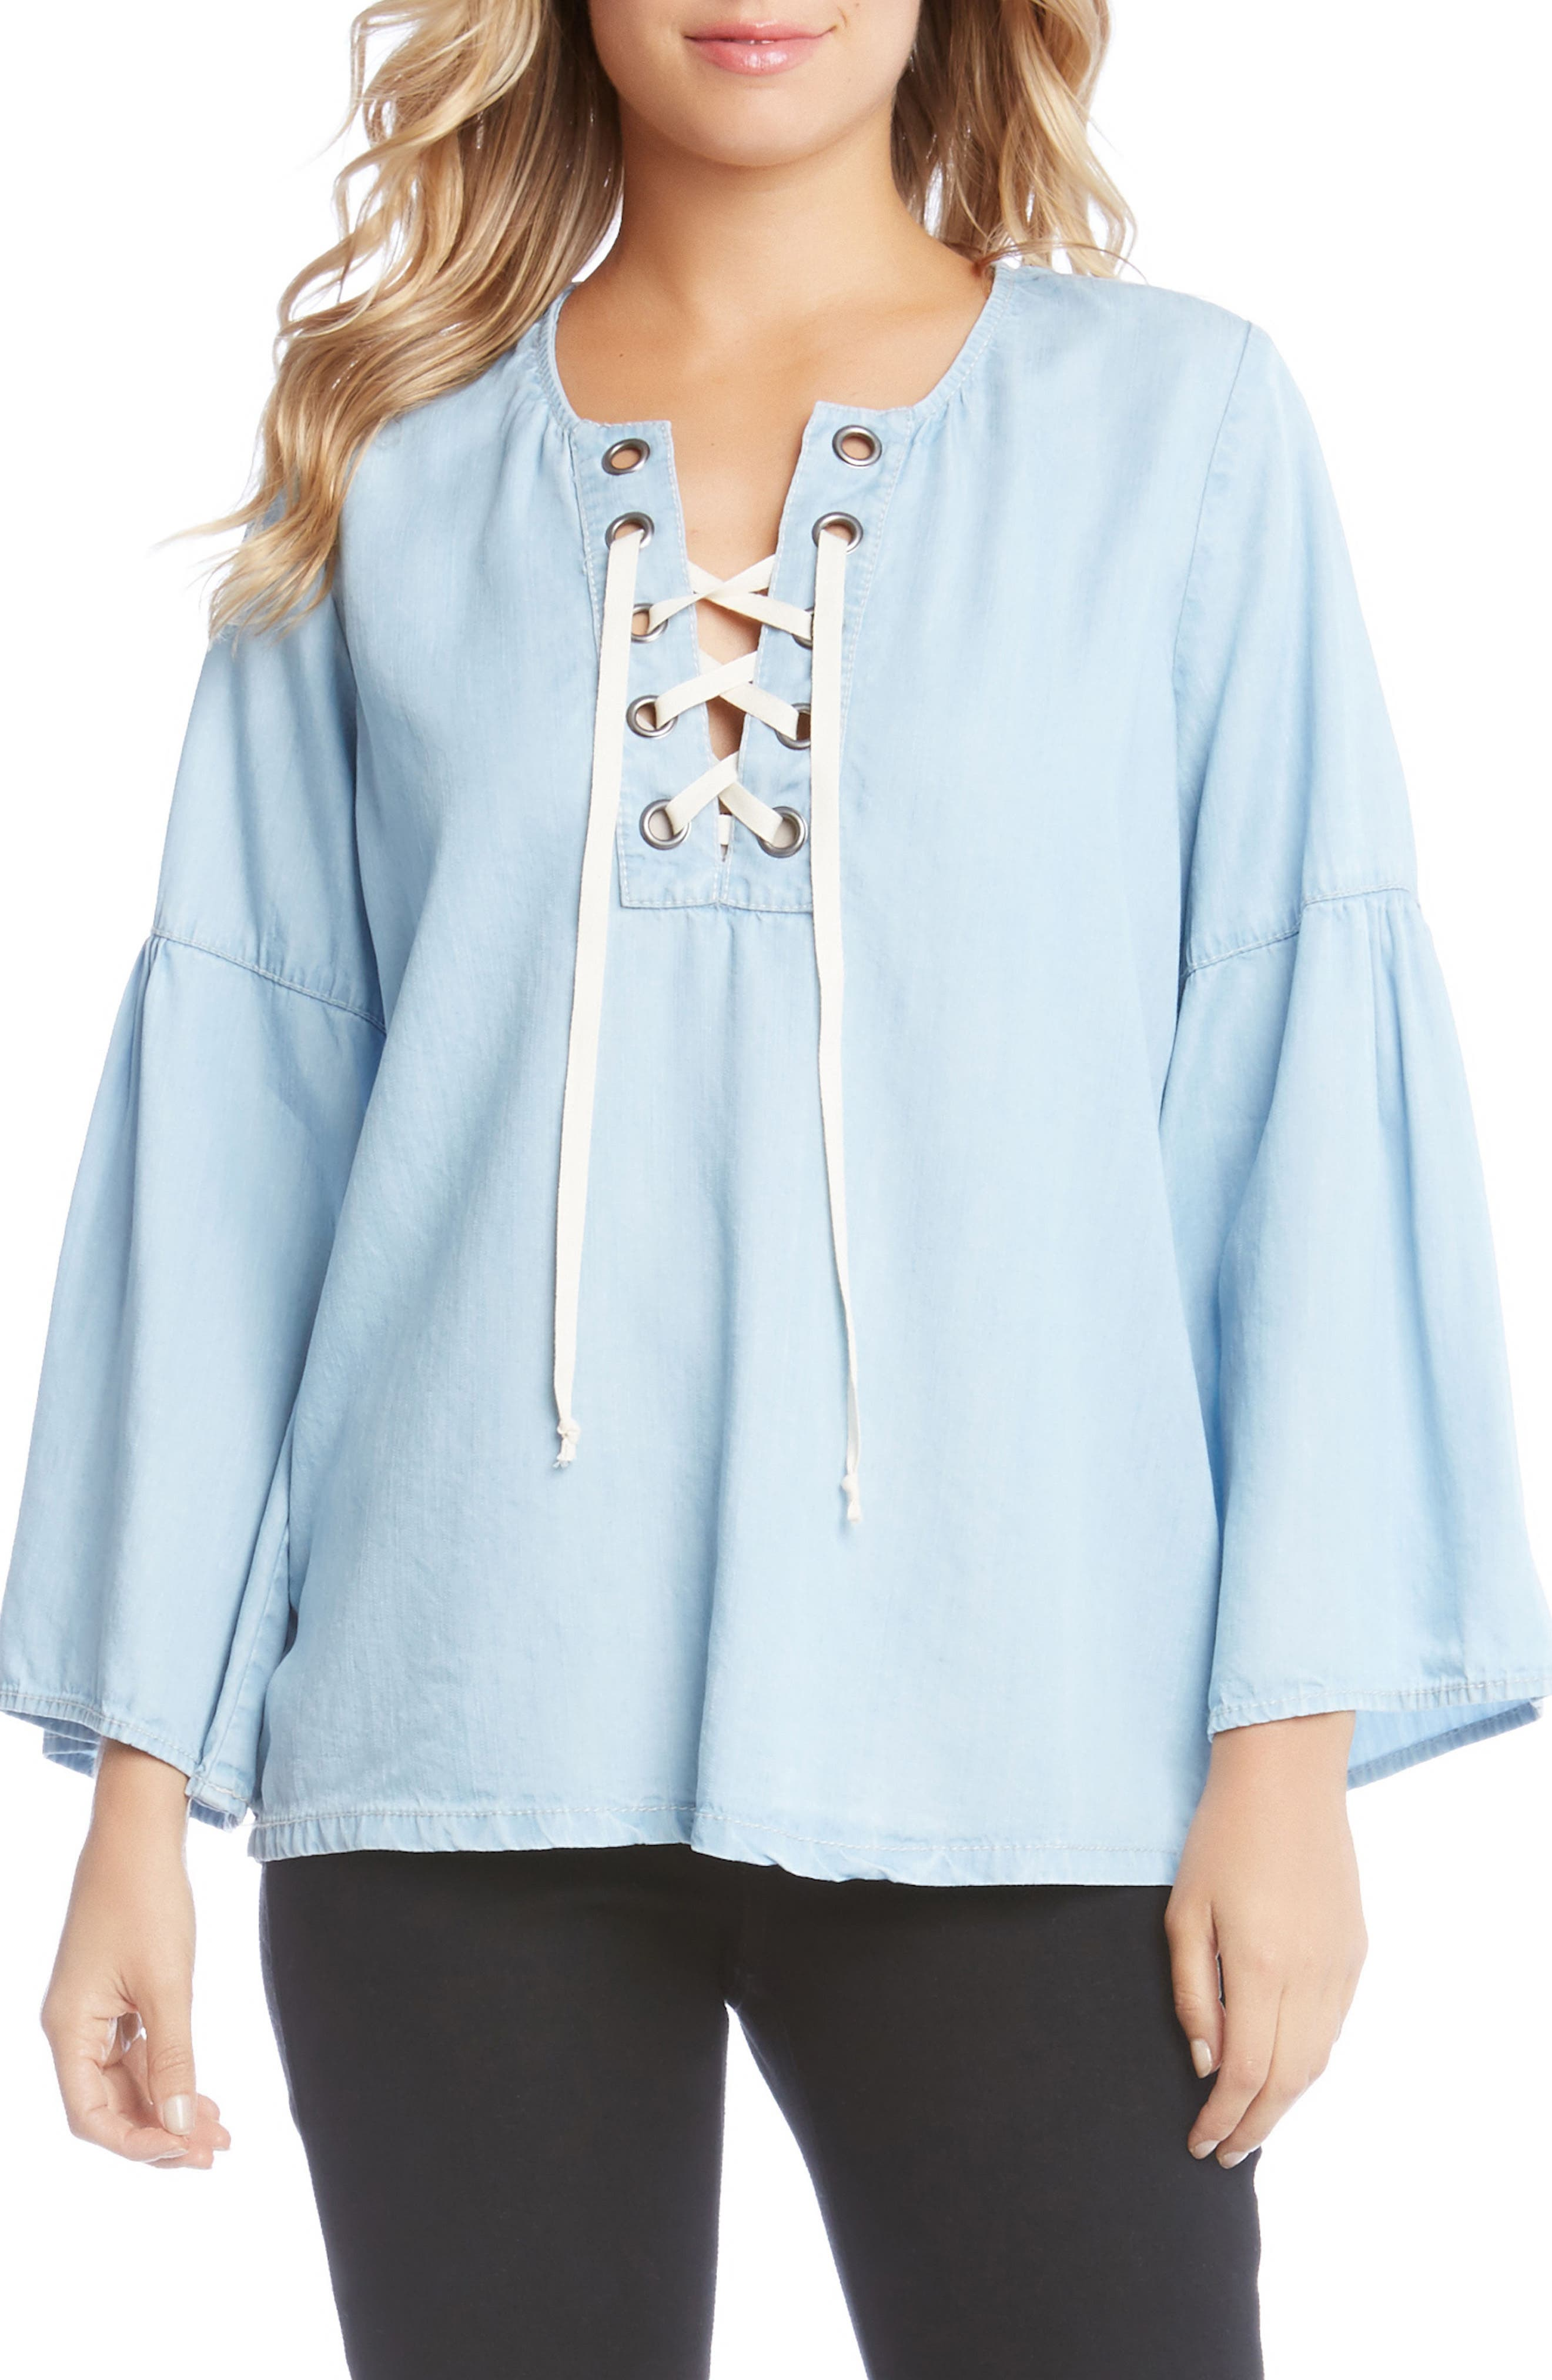 Alternate Image 1 Selected - Karen Kane Lace-Up Bell Sleeve Top